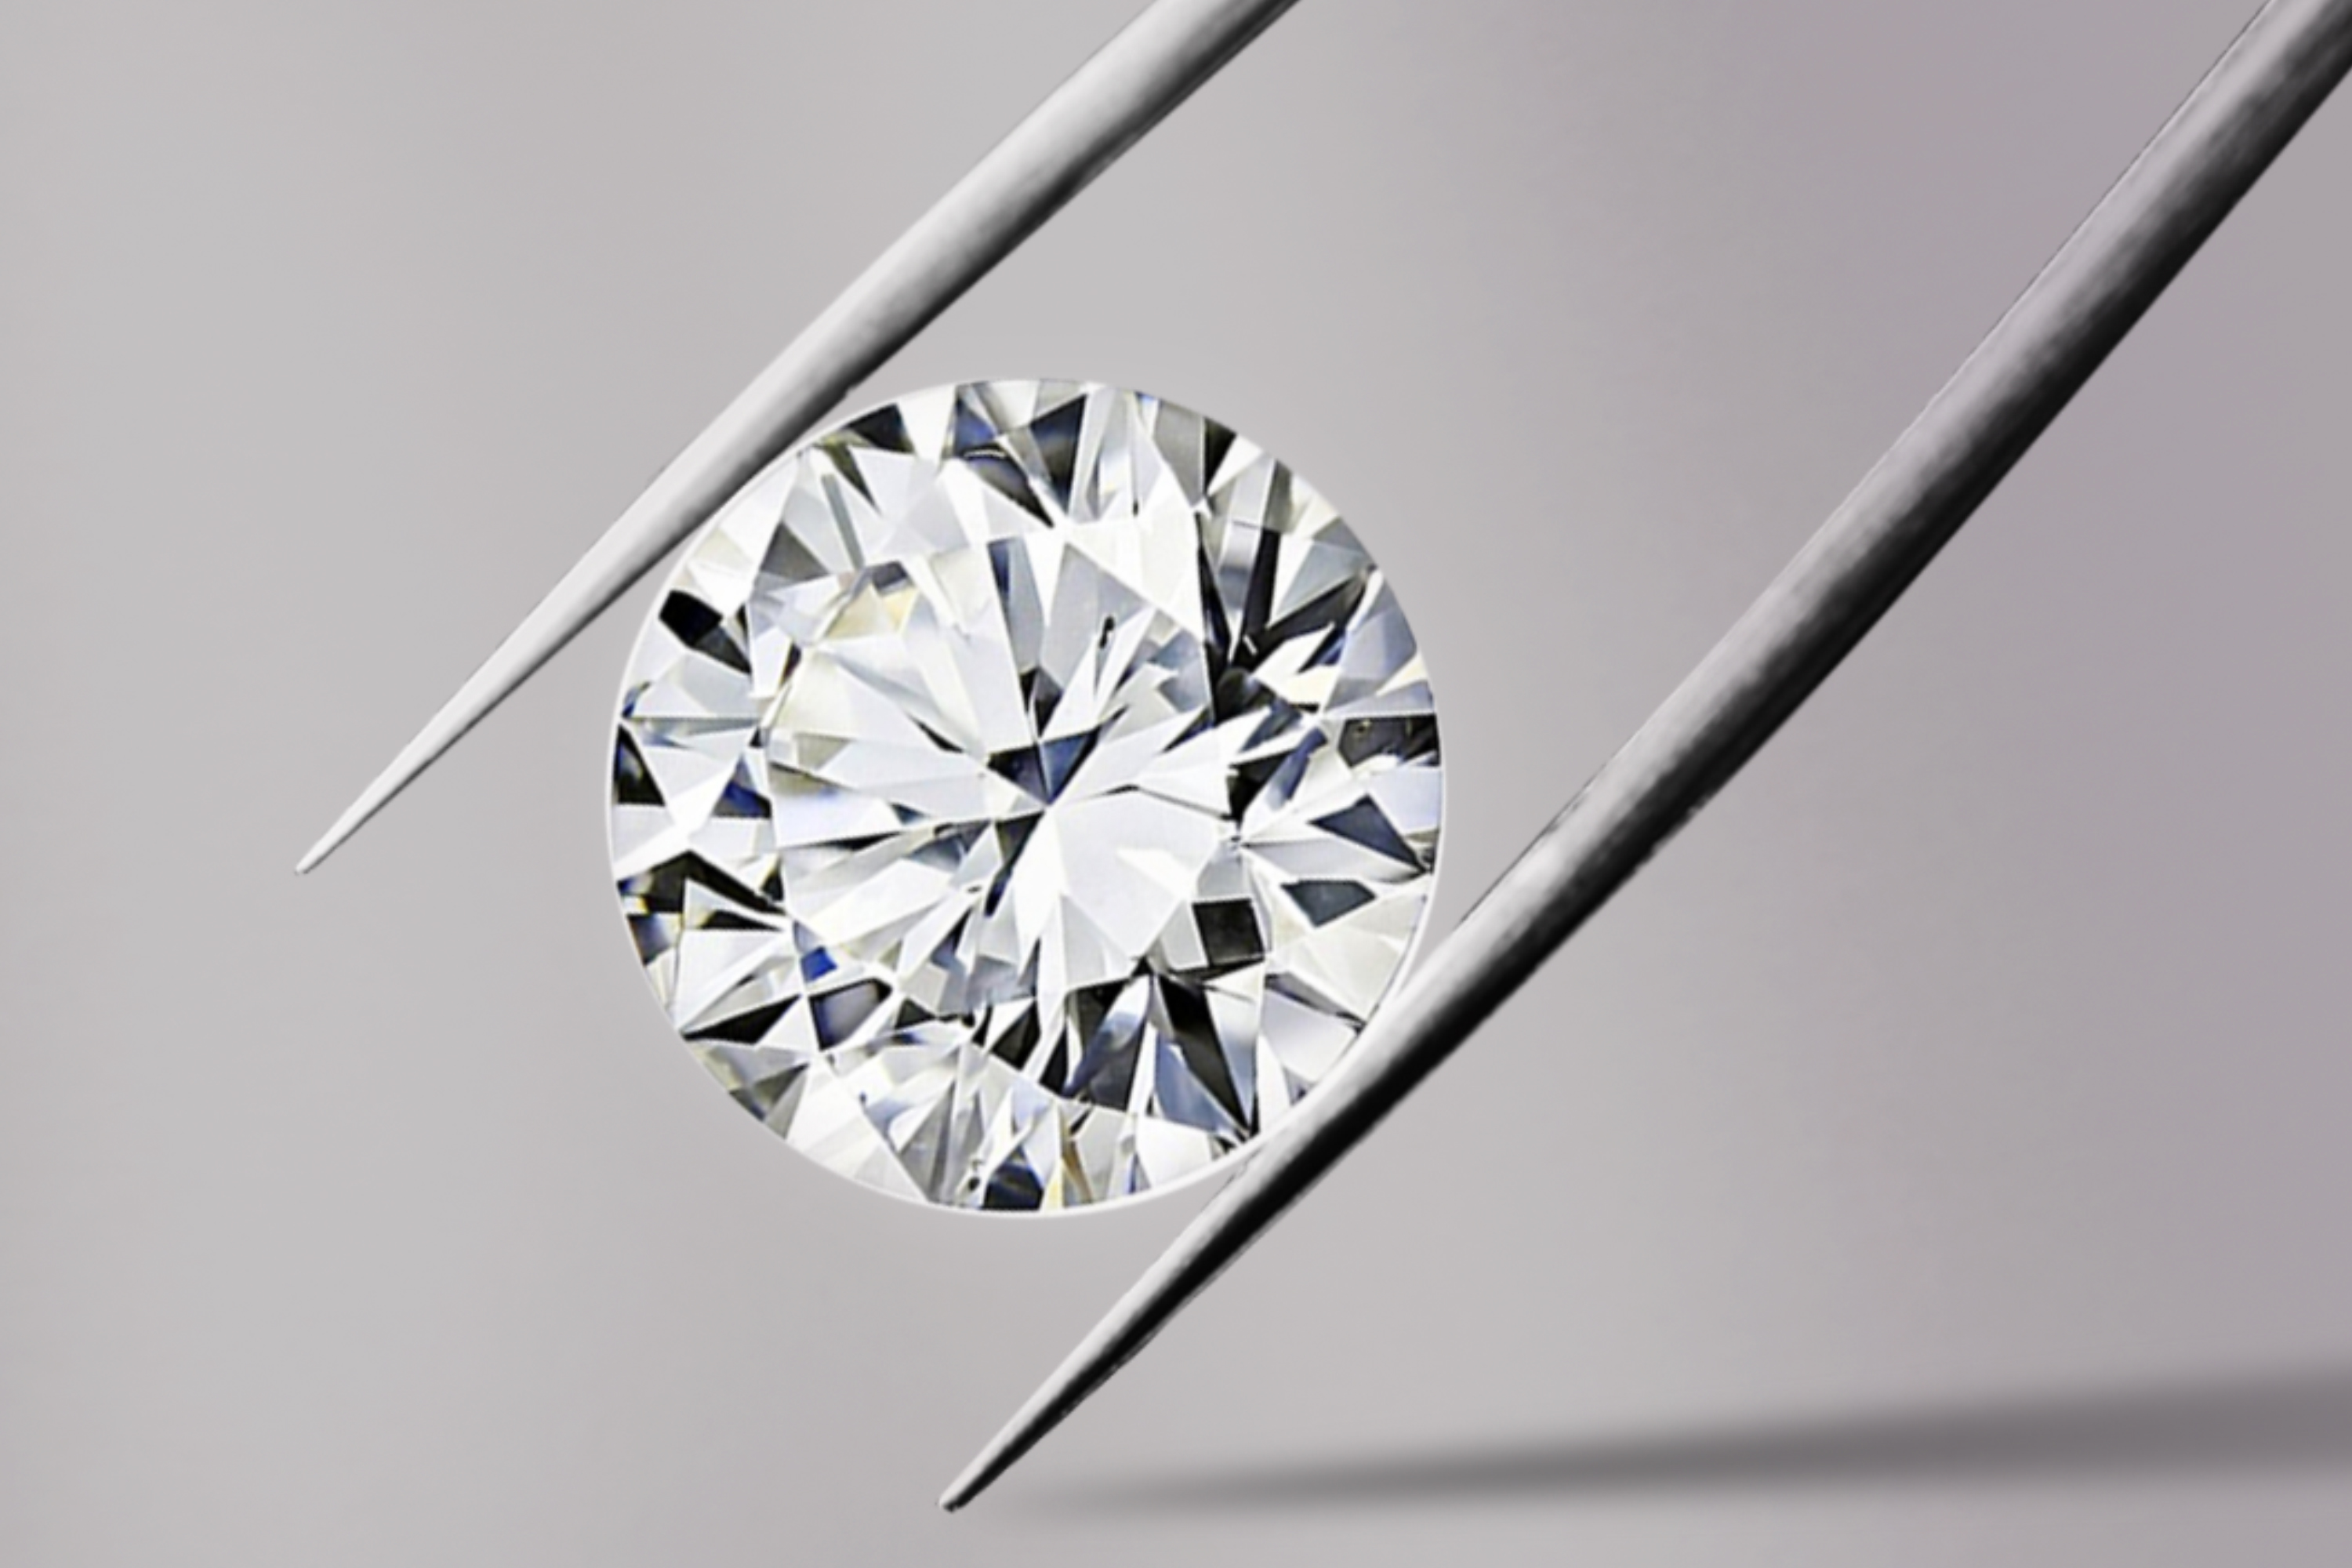 The effects of coronavirus on the current economic state and what it means for diamond prices